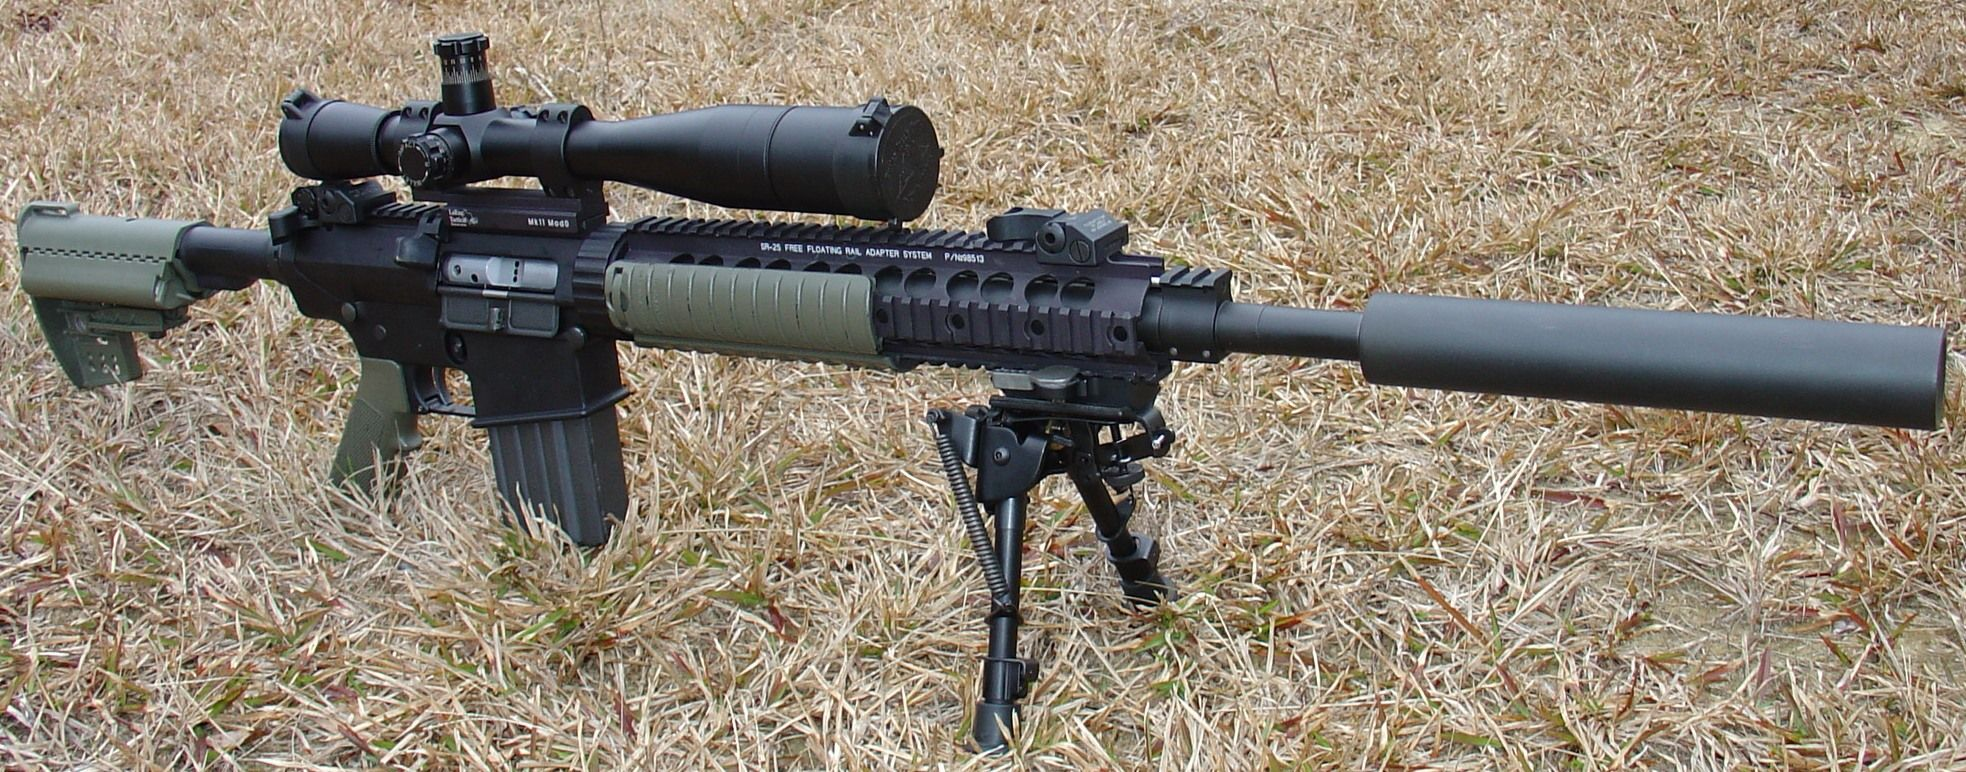 Jake Carried This Weapon While Serving As A Scout Sniper U